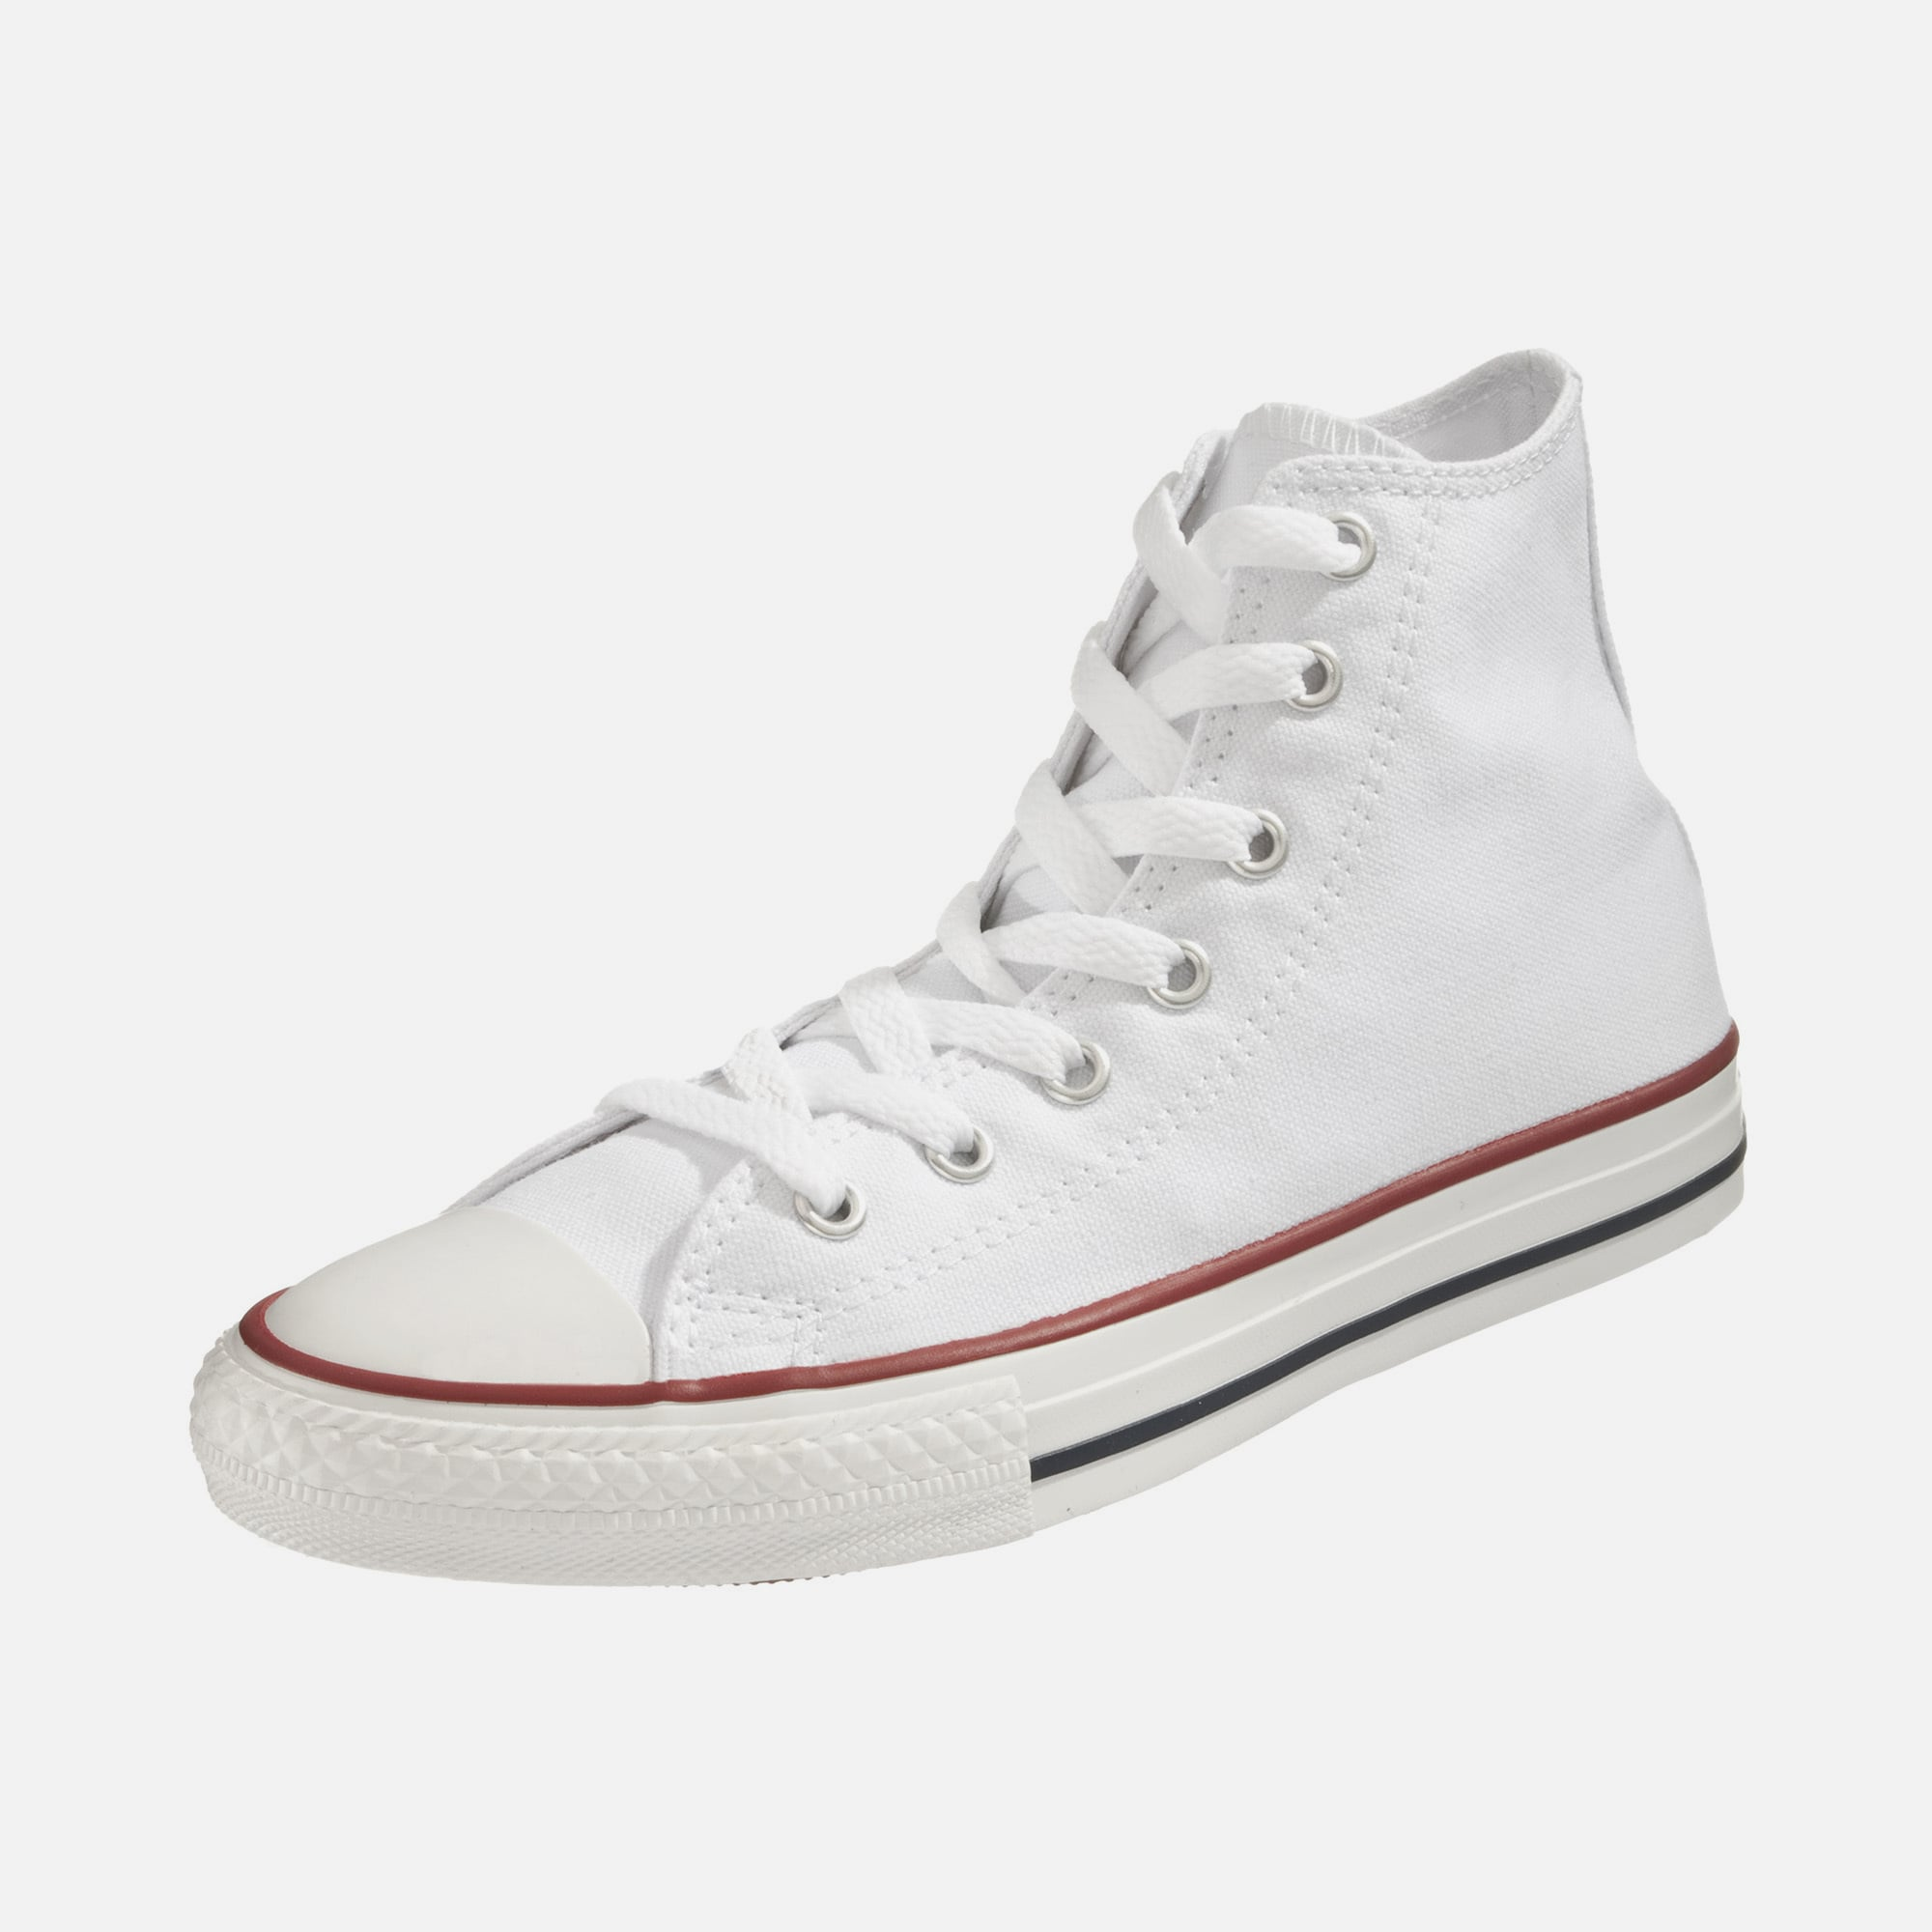 converse chuck taylor all star sneaker in wei about you. Black Bedroom Furniture Sets. Home Design Ideas